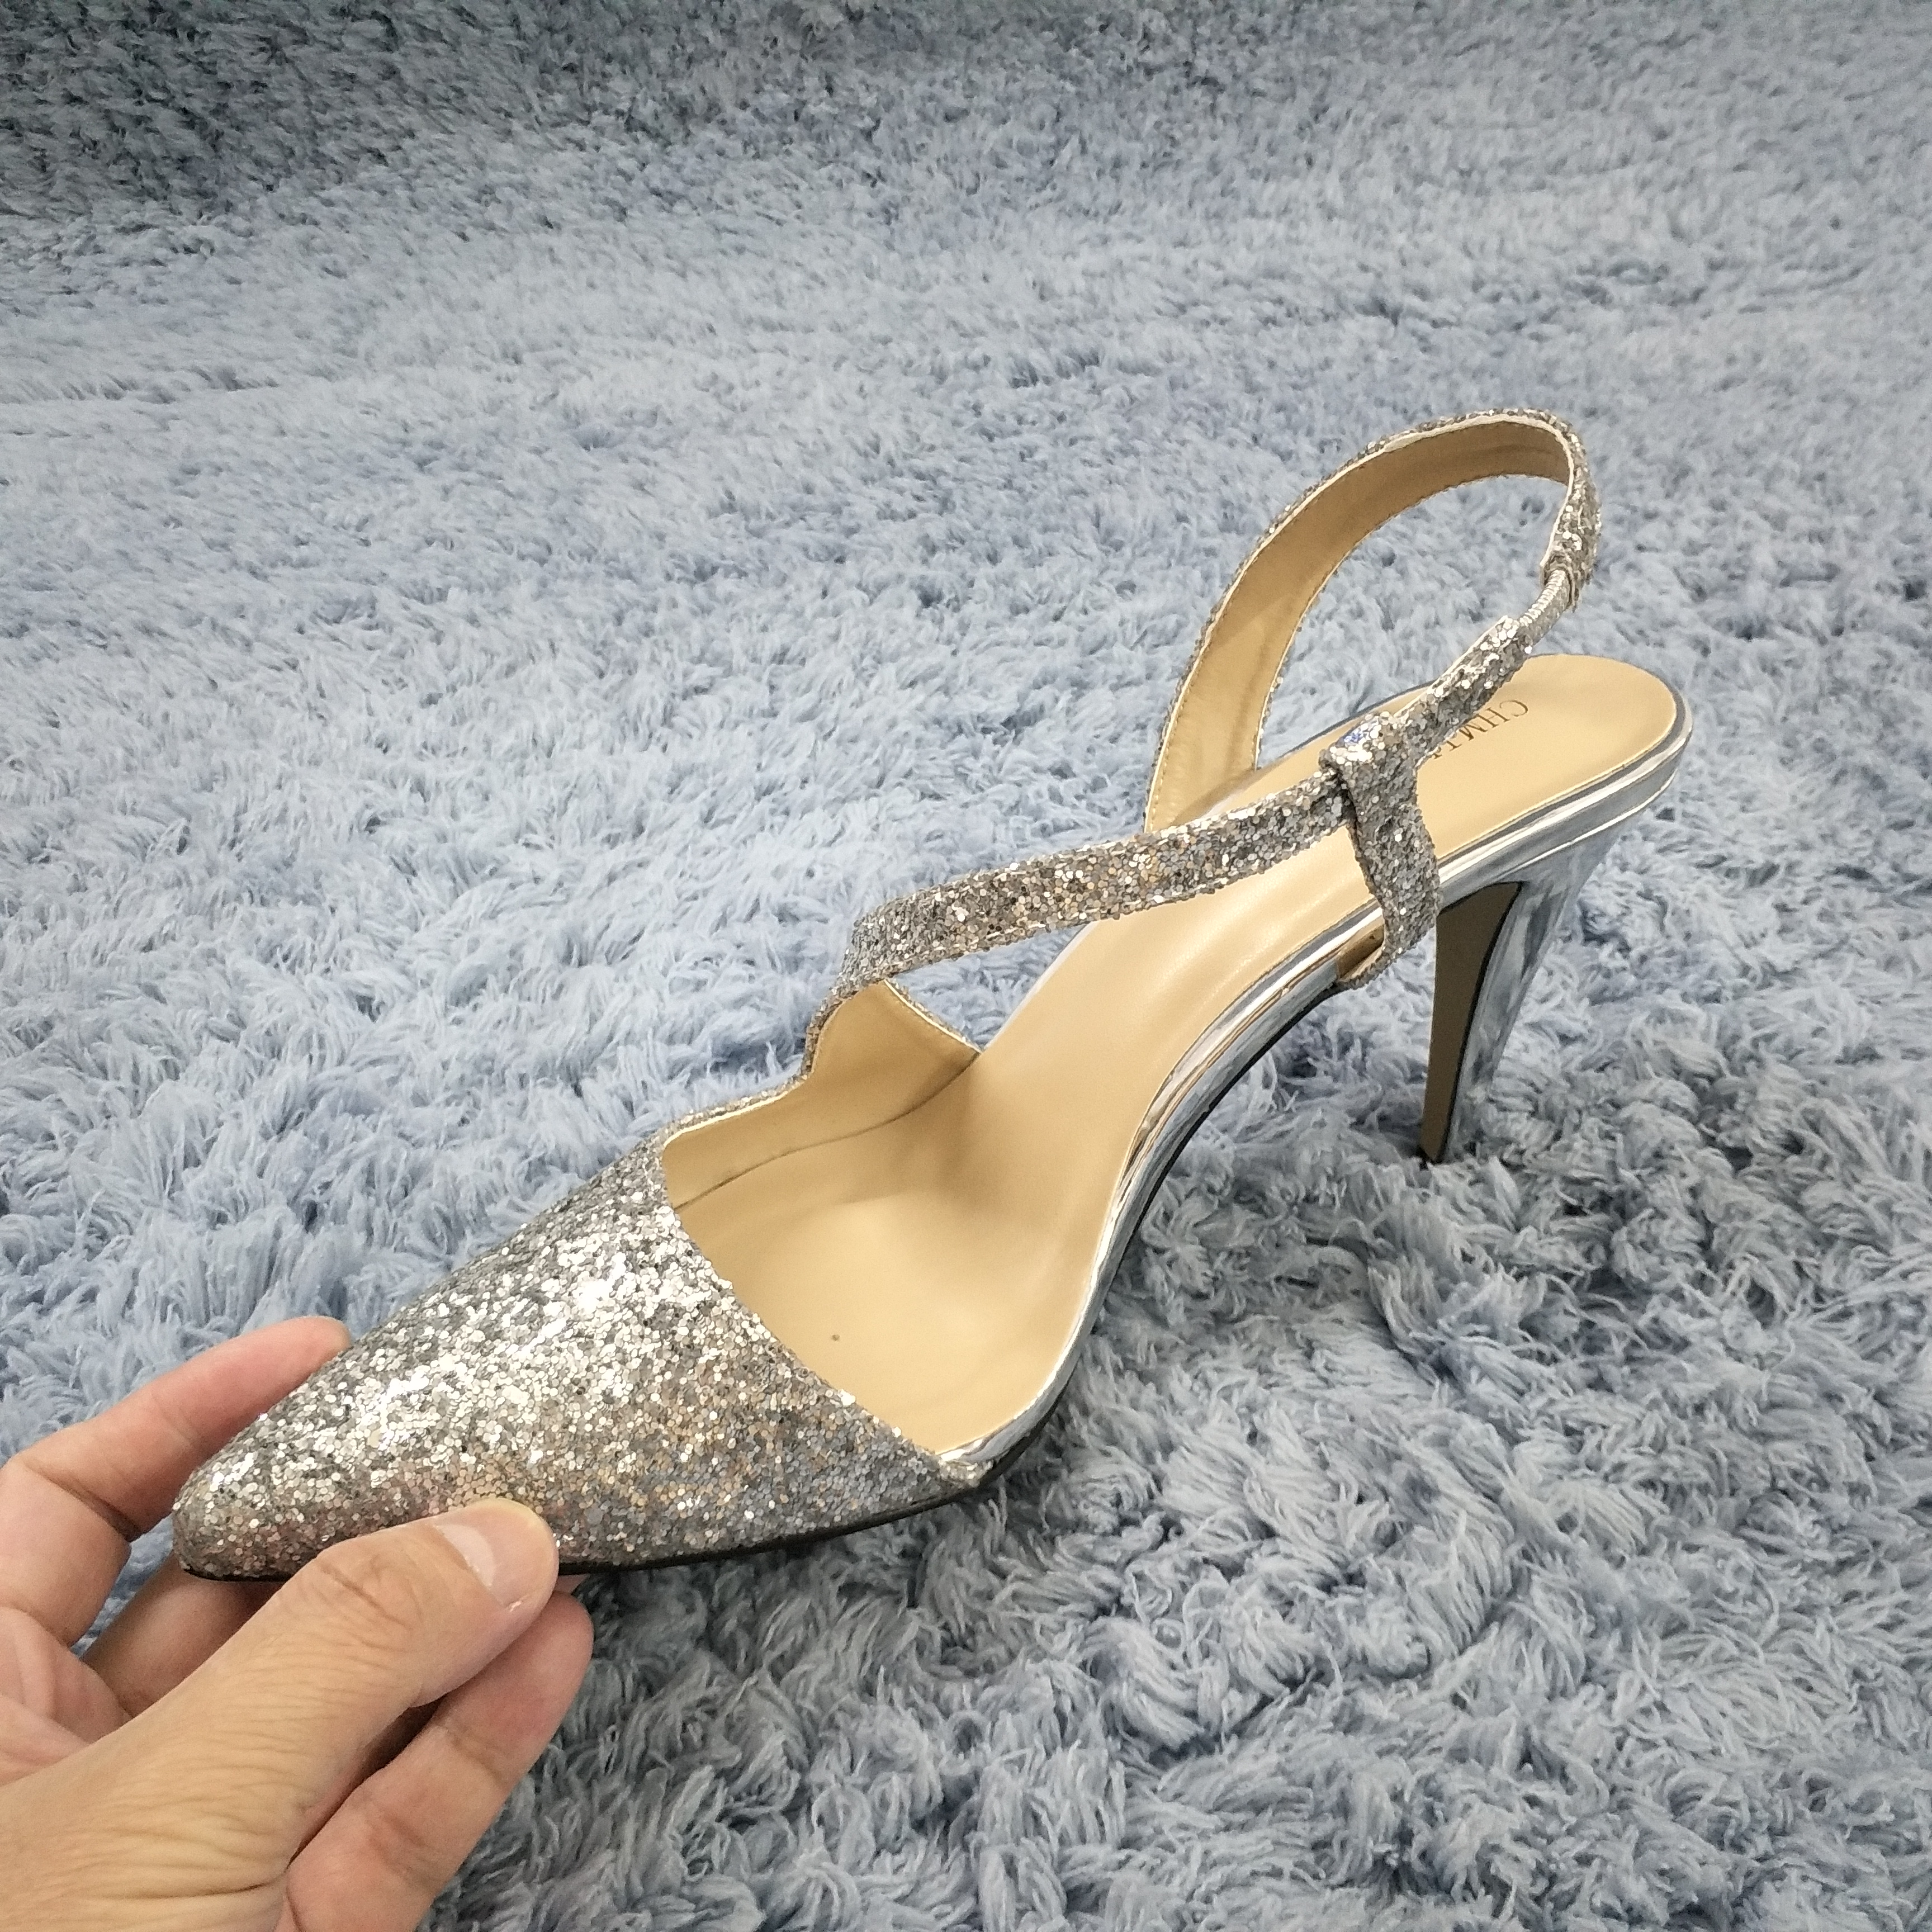 Women Stiletto Thin High Heel Sandals Sexy Pointed Toe Sling Back Silver Glitter Wedding Party Bridals Ball Lady Shoes 3364 e in High Heels from Shoes